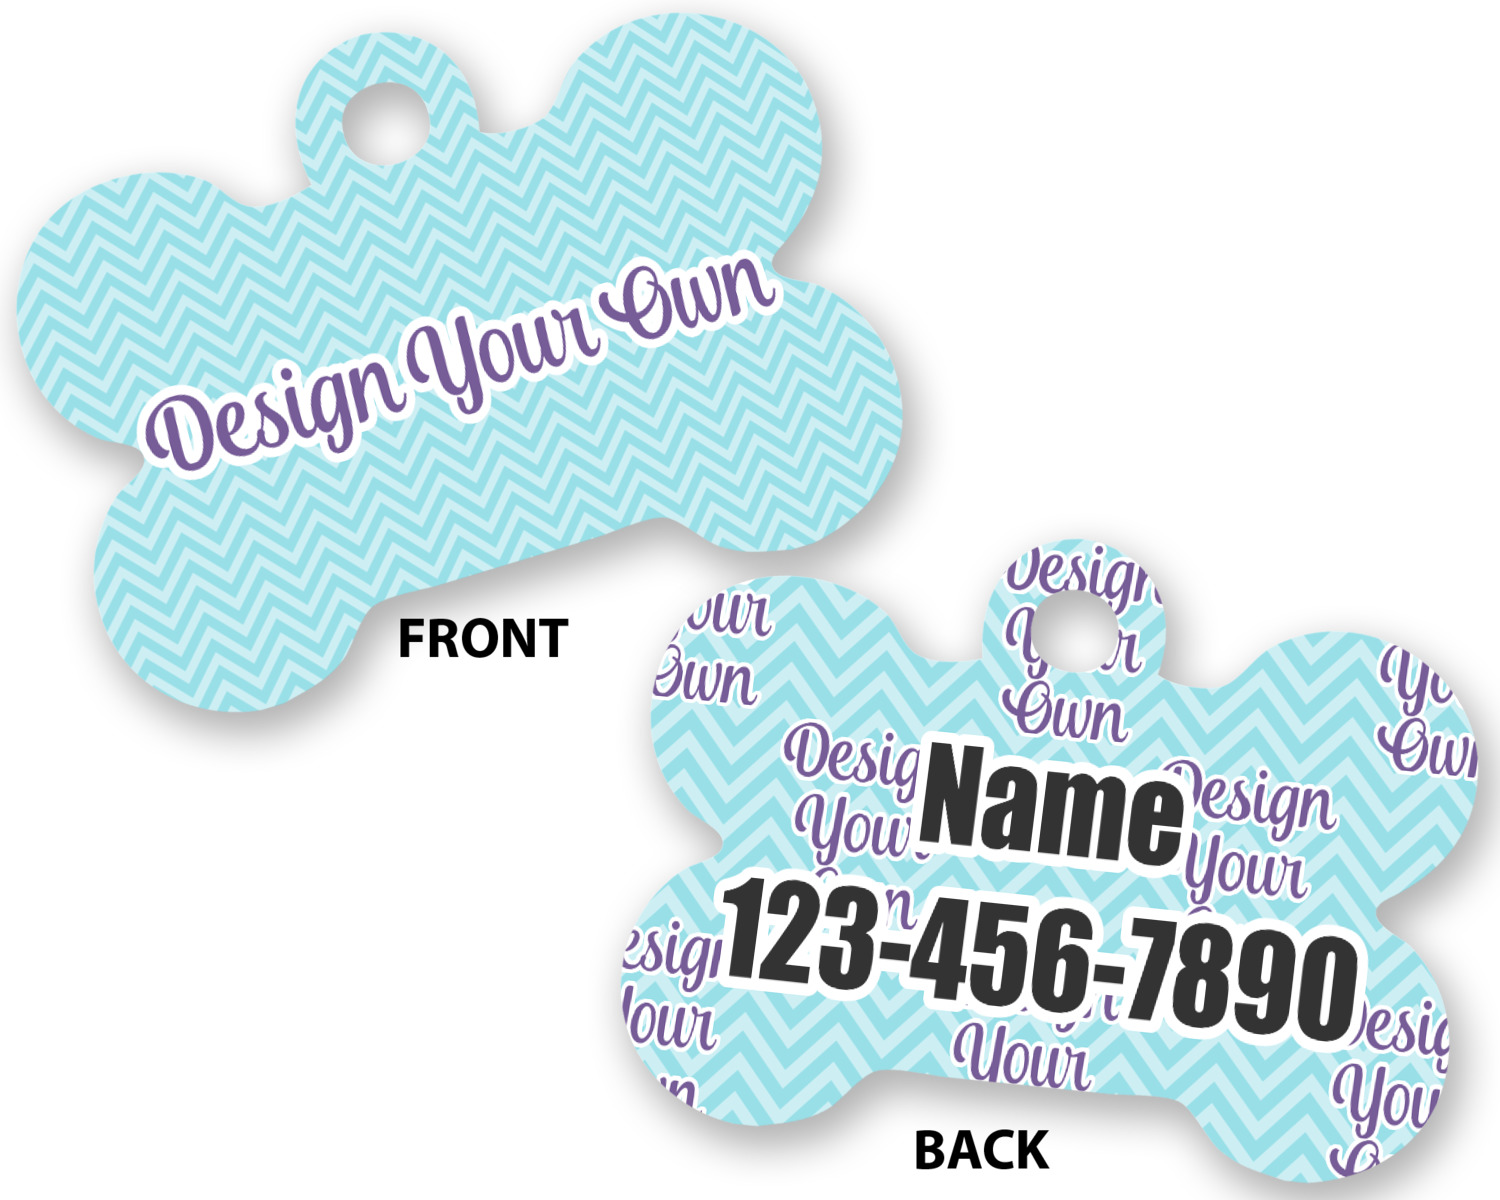 0a7578e40873 Design Your Own Bone Shaped Dog Tag (Personalized) - YouCustomizeIt